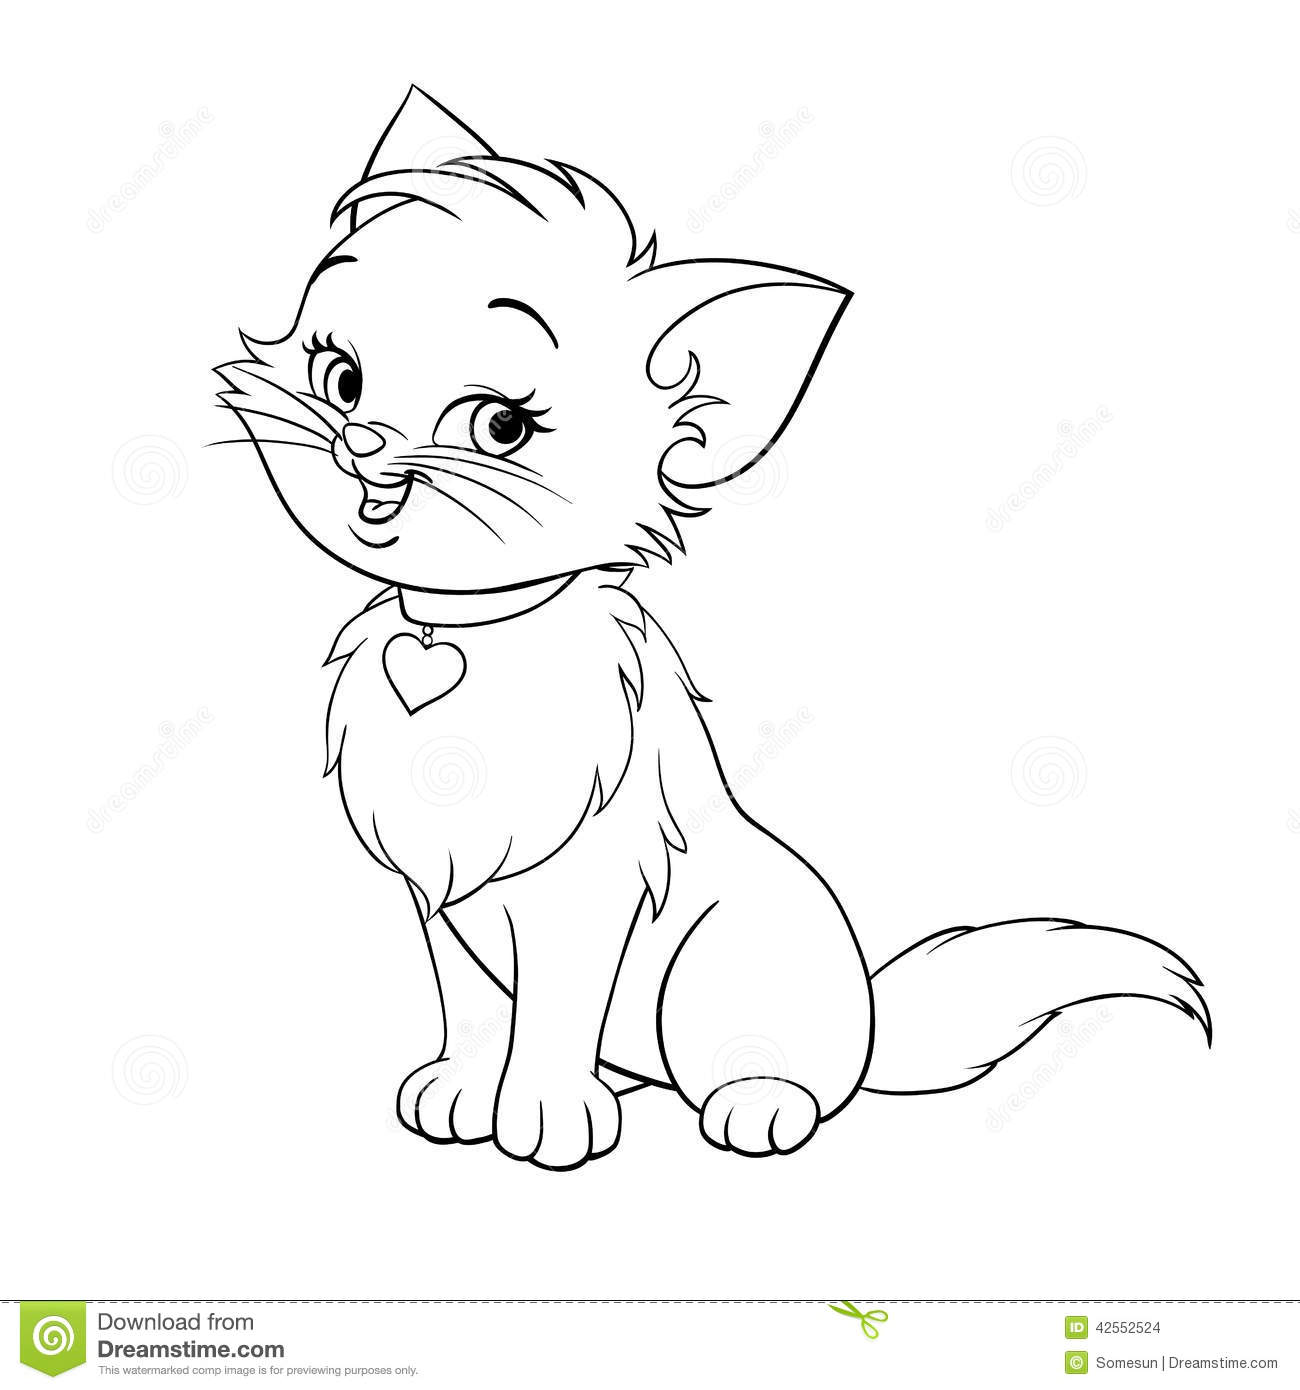 Kitten clipart black and white » Clipart Station.